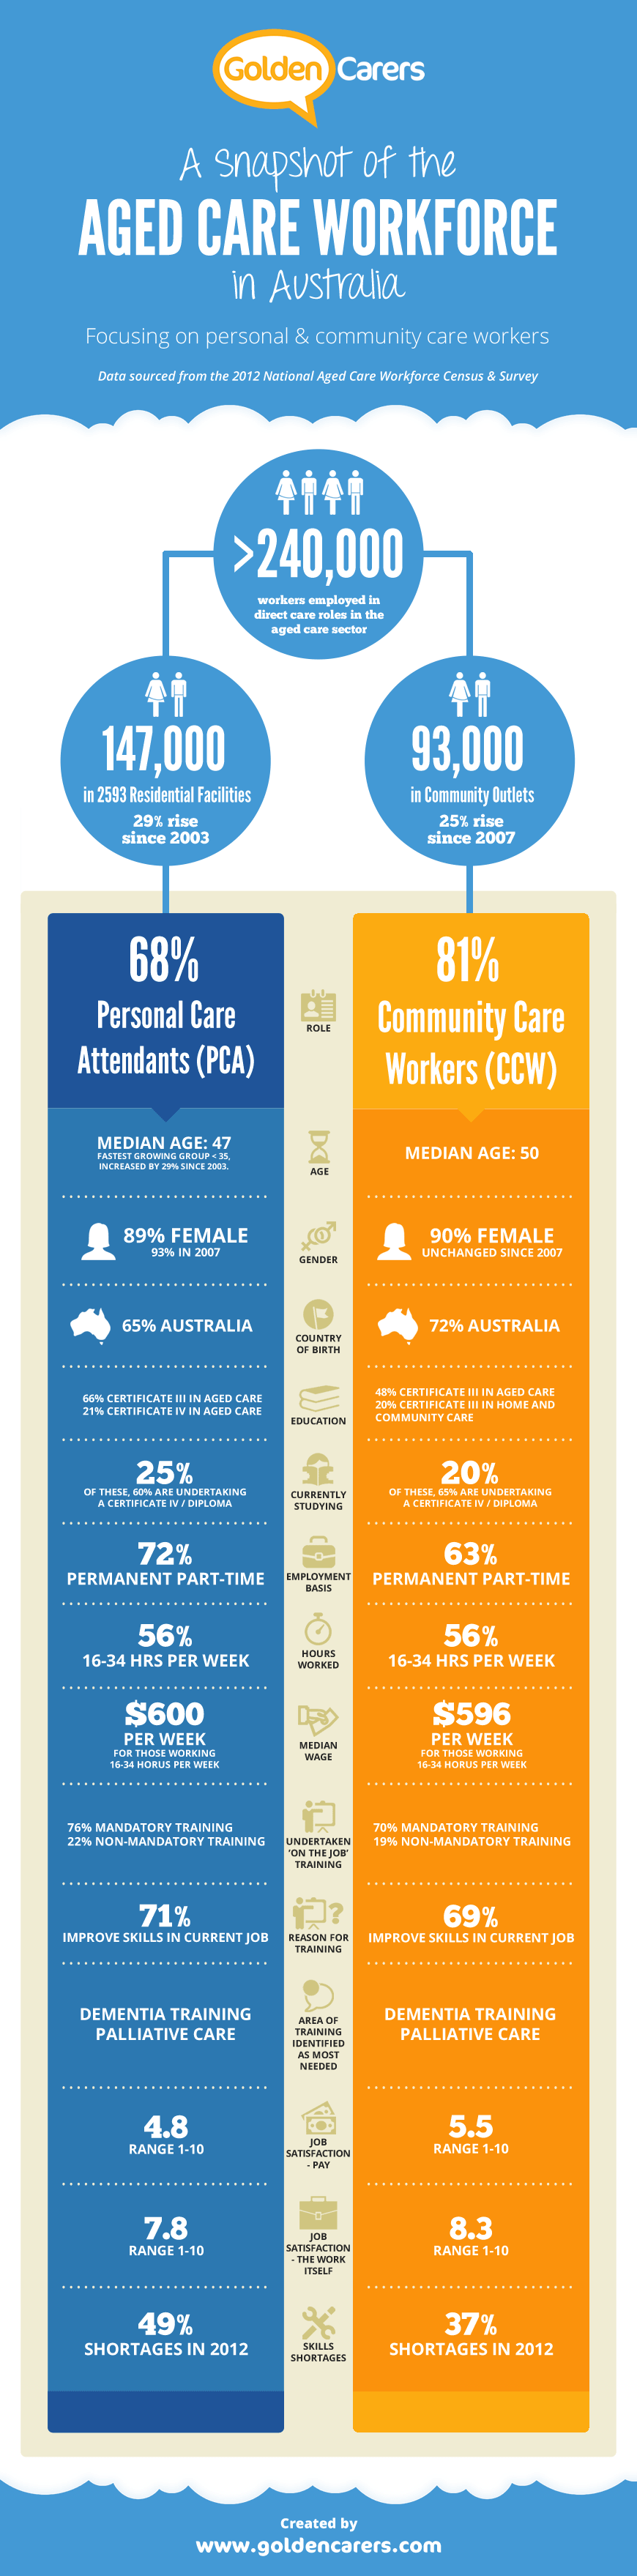 Infographic : A Snapshot of the Aged Care Workforce In Australia. Data sourced from the 2012 national Aged Care Workforce Census & Survey.